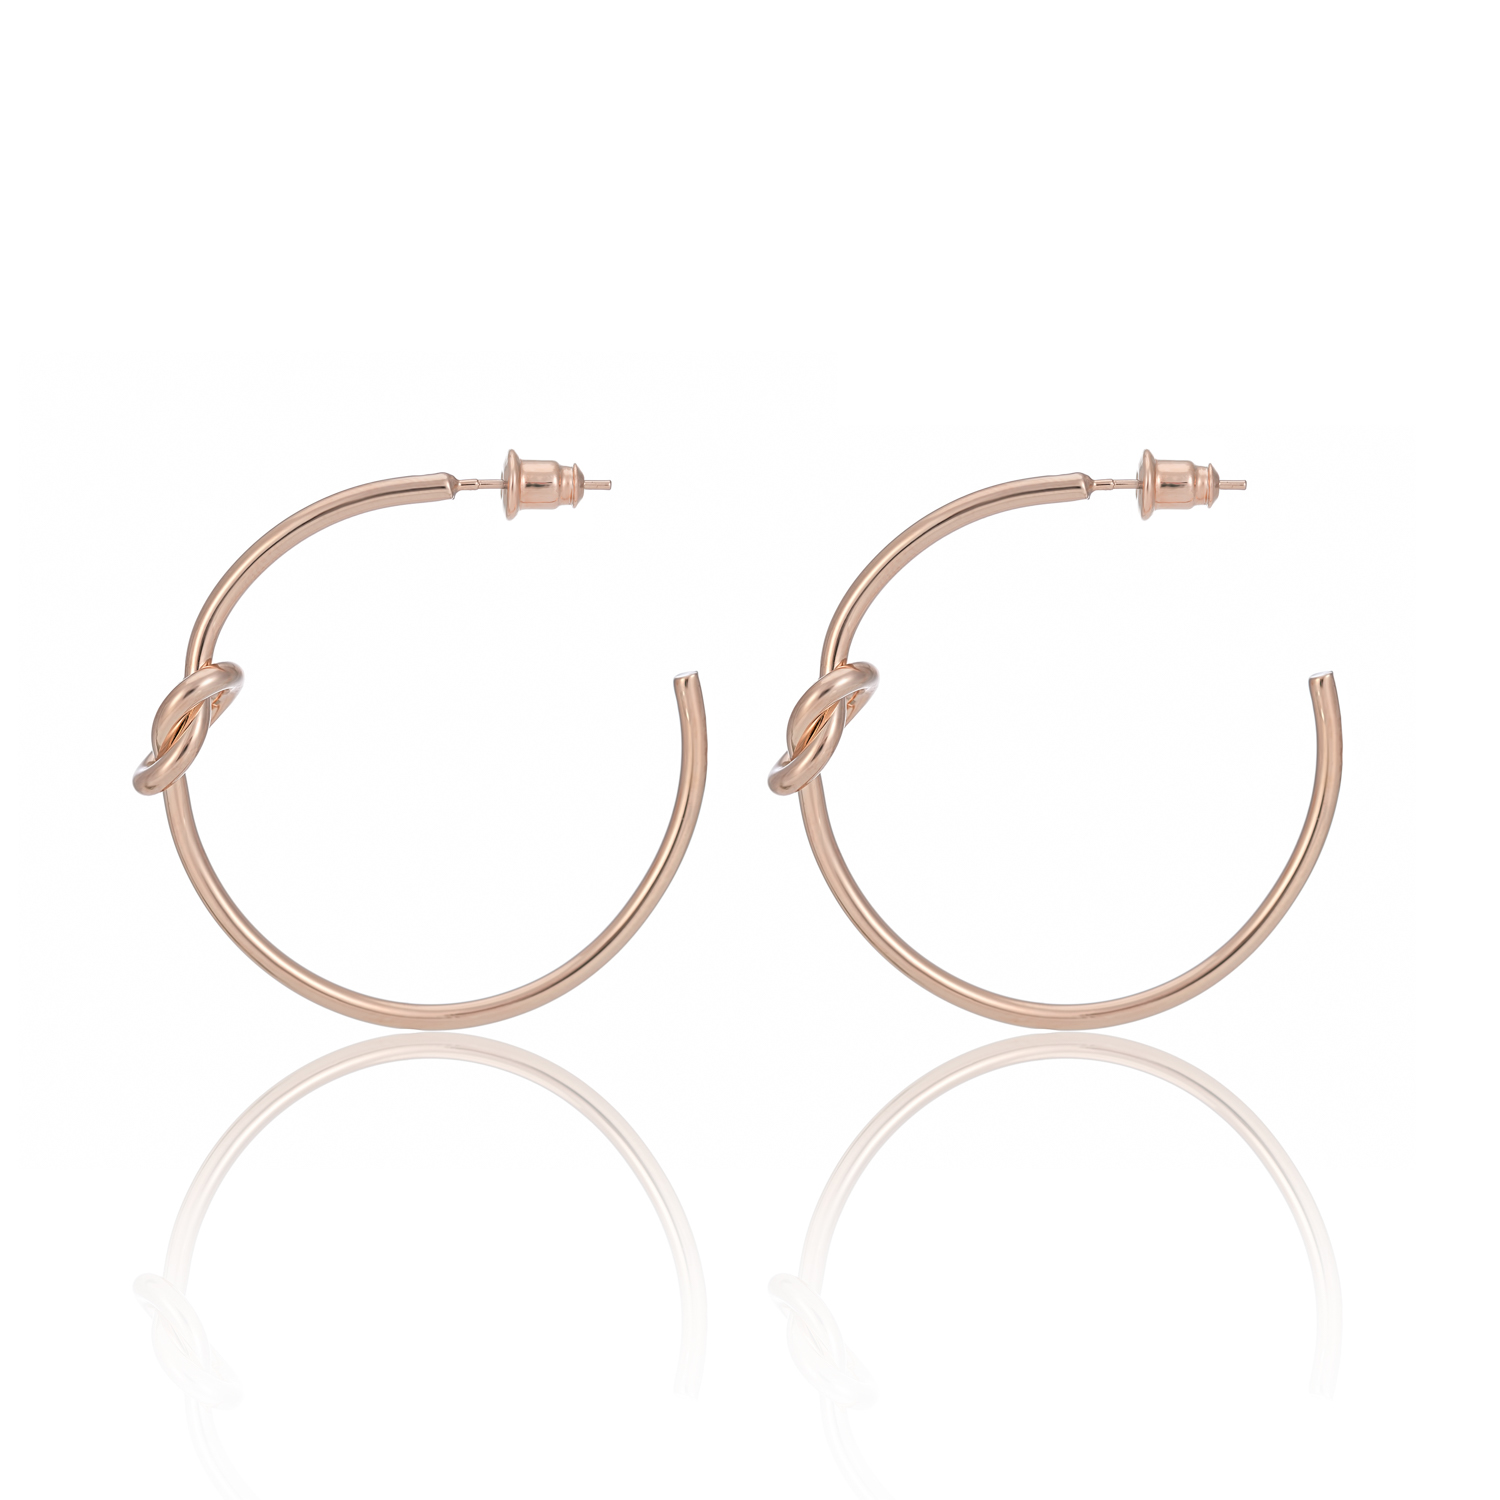 ROSE GOLD BE BOLD KNOT HOOPS